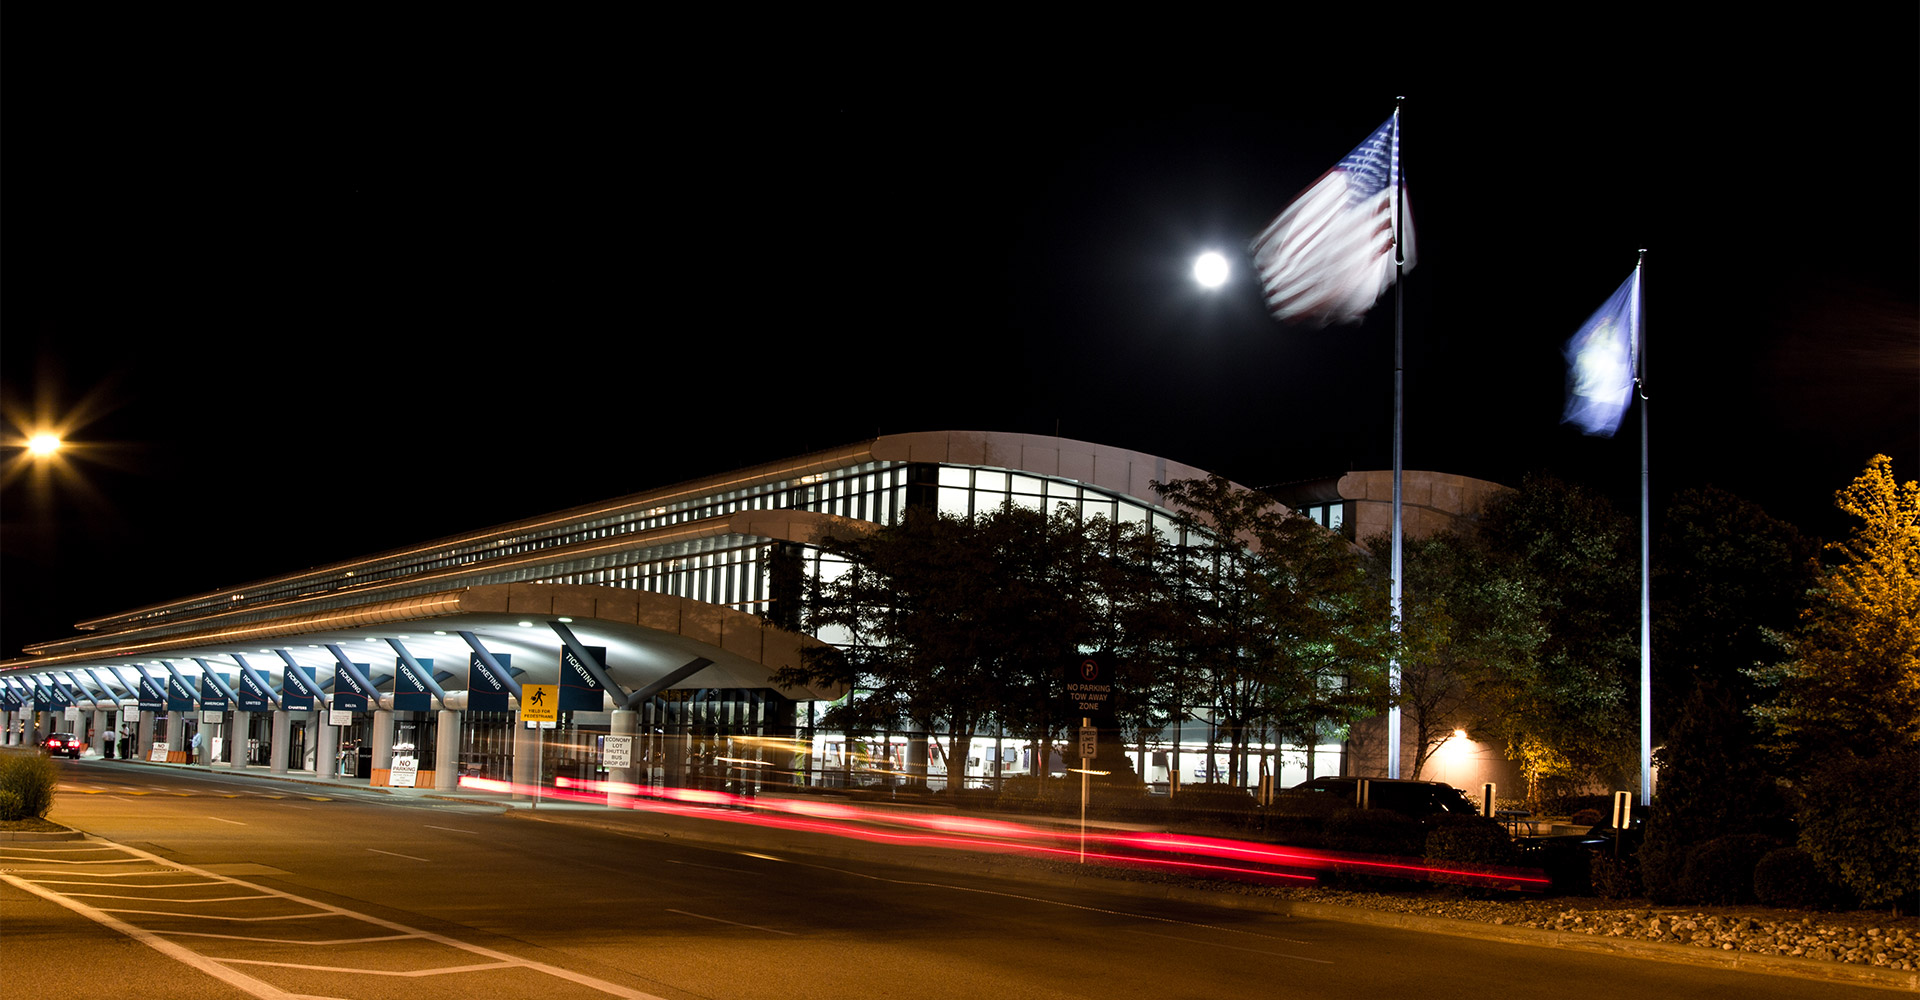 Exterior of Bishop International Airport at night.